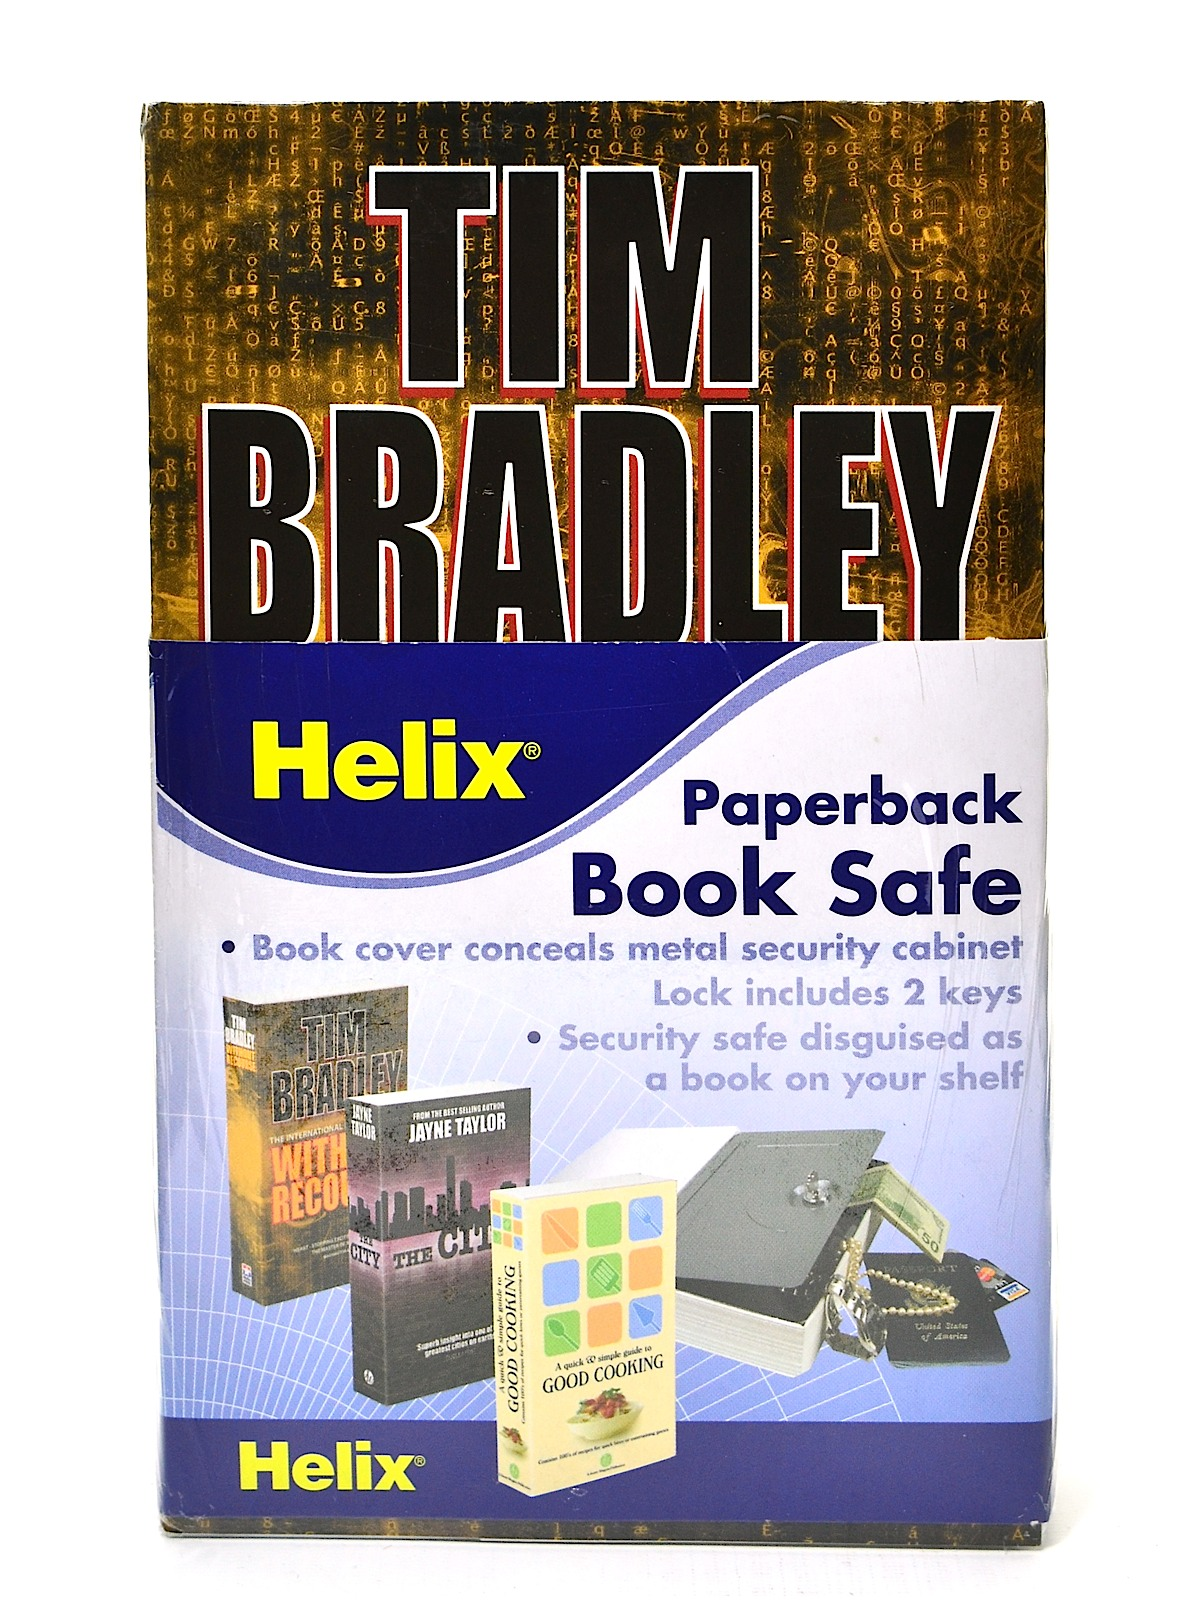 Homesafe Paperback Book Safe